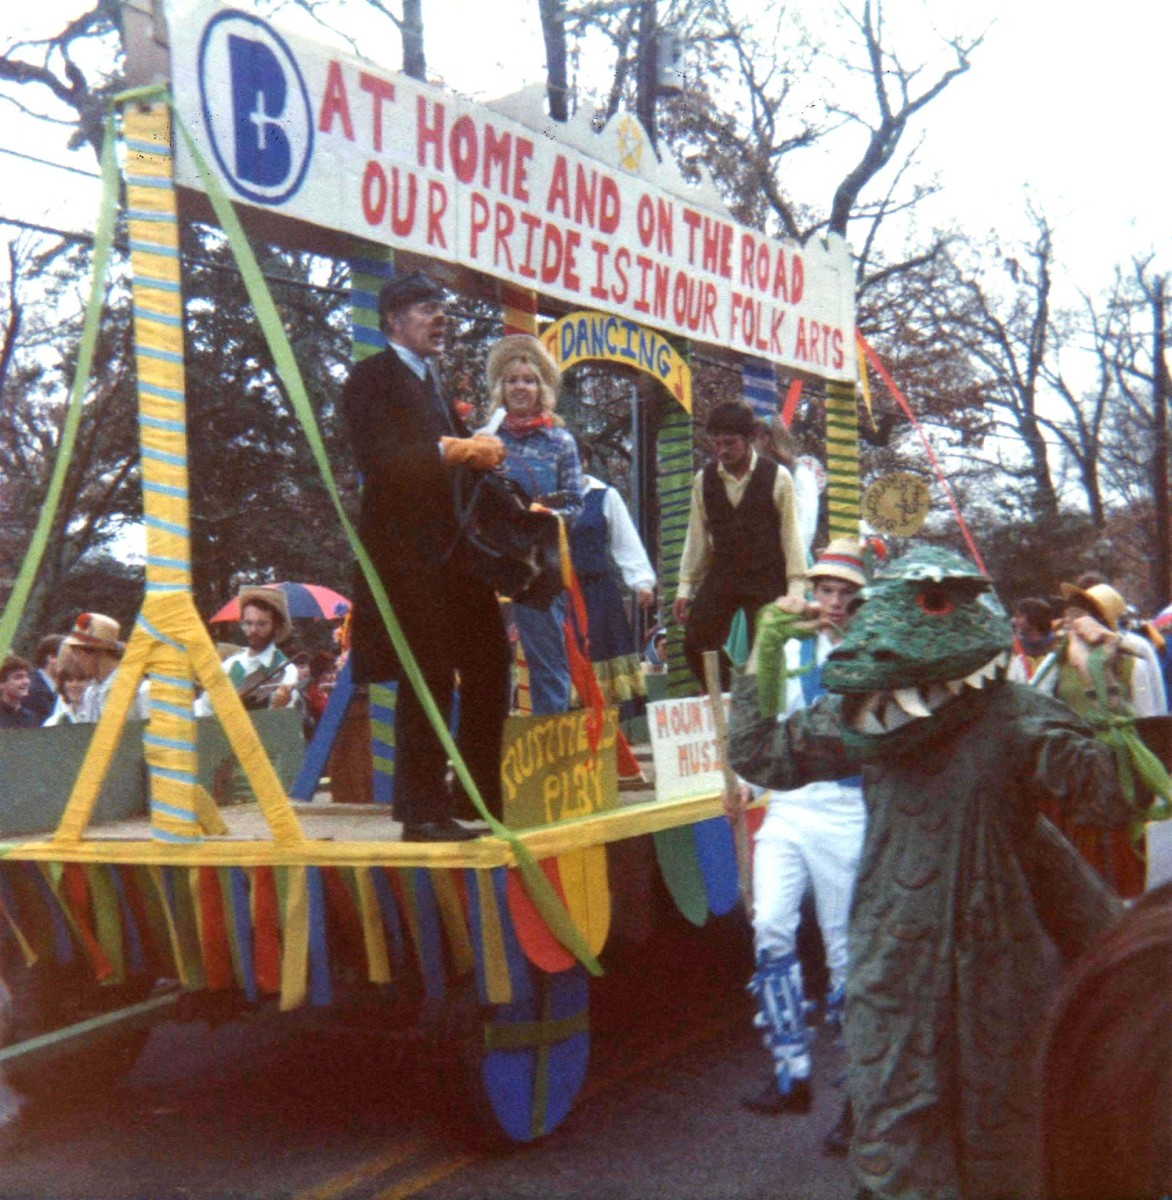 Homecoming parade on Chestnut Street (Highway 25), which passes through the town and the campus, is one of many student activities at Berea.